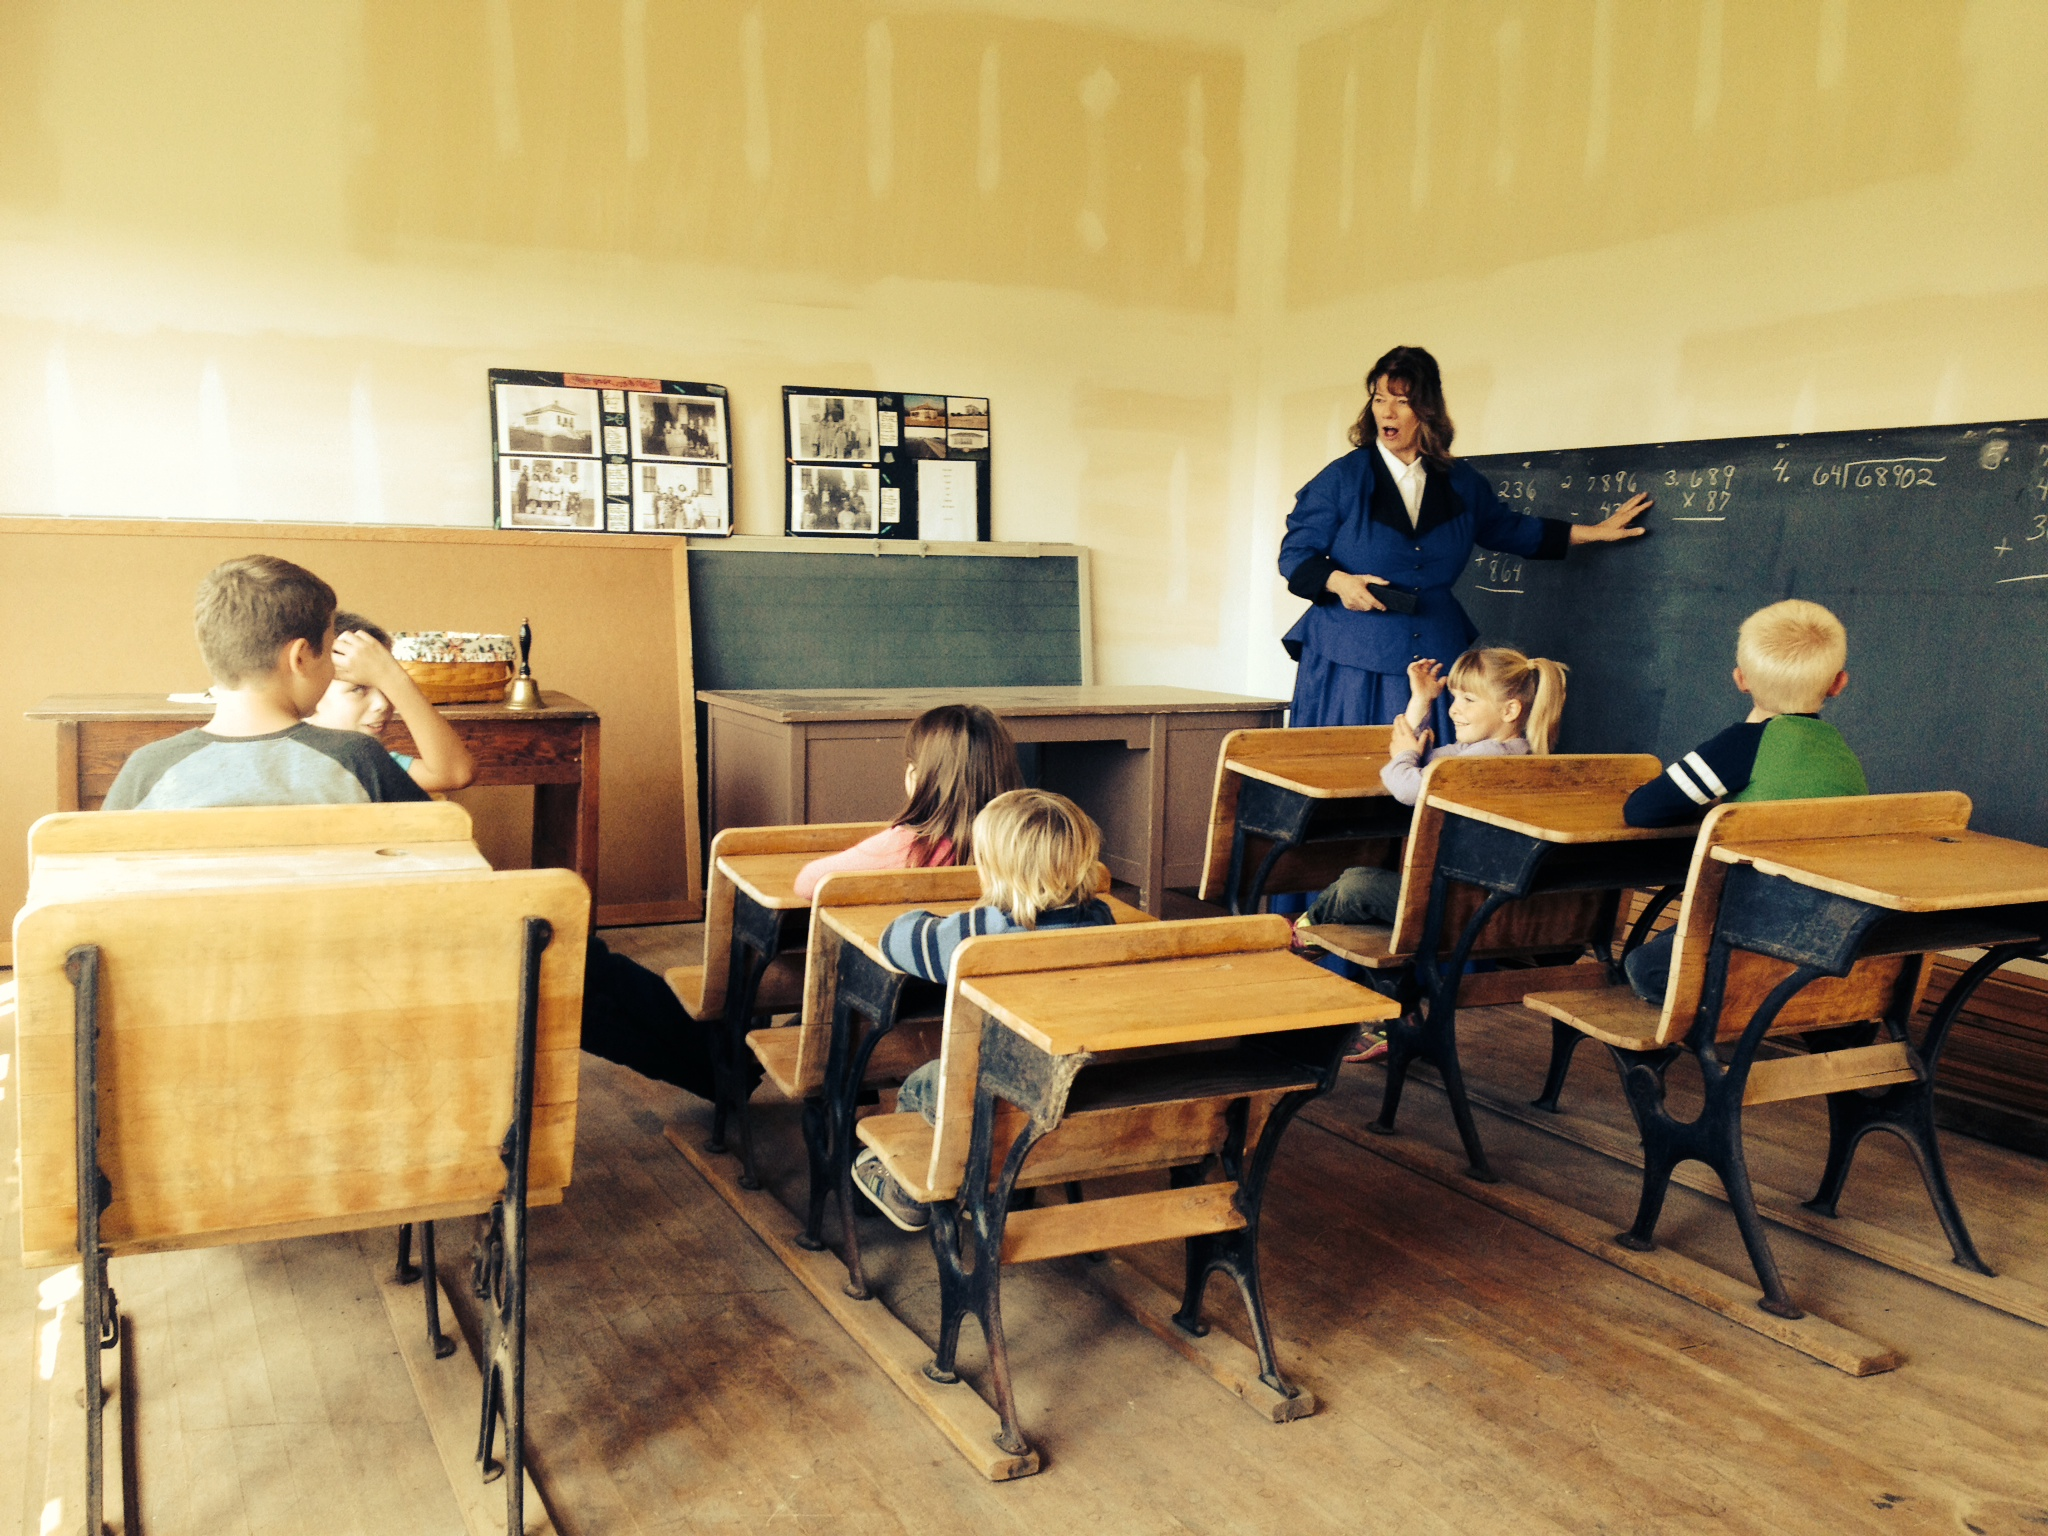 Old school house classroom the image for Best old school house